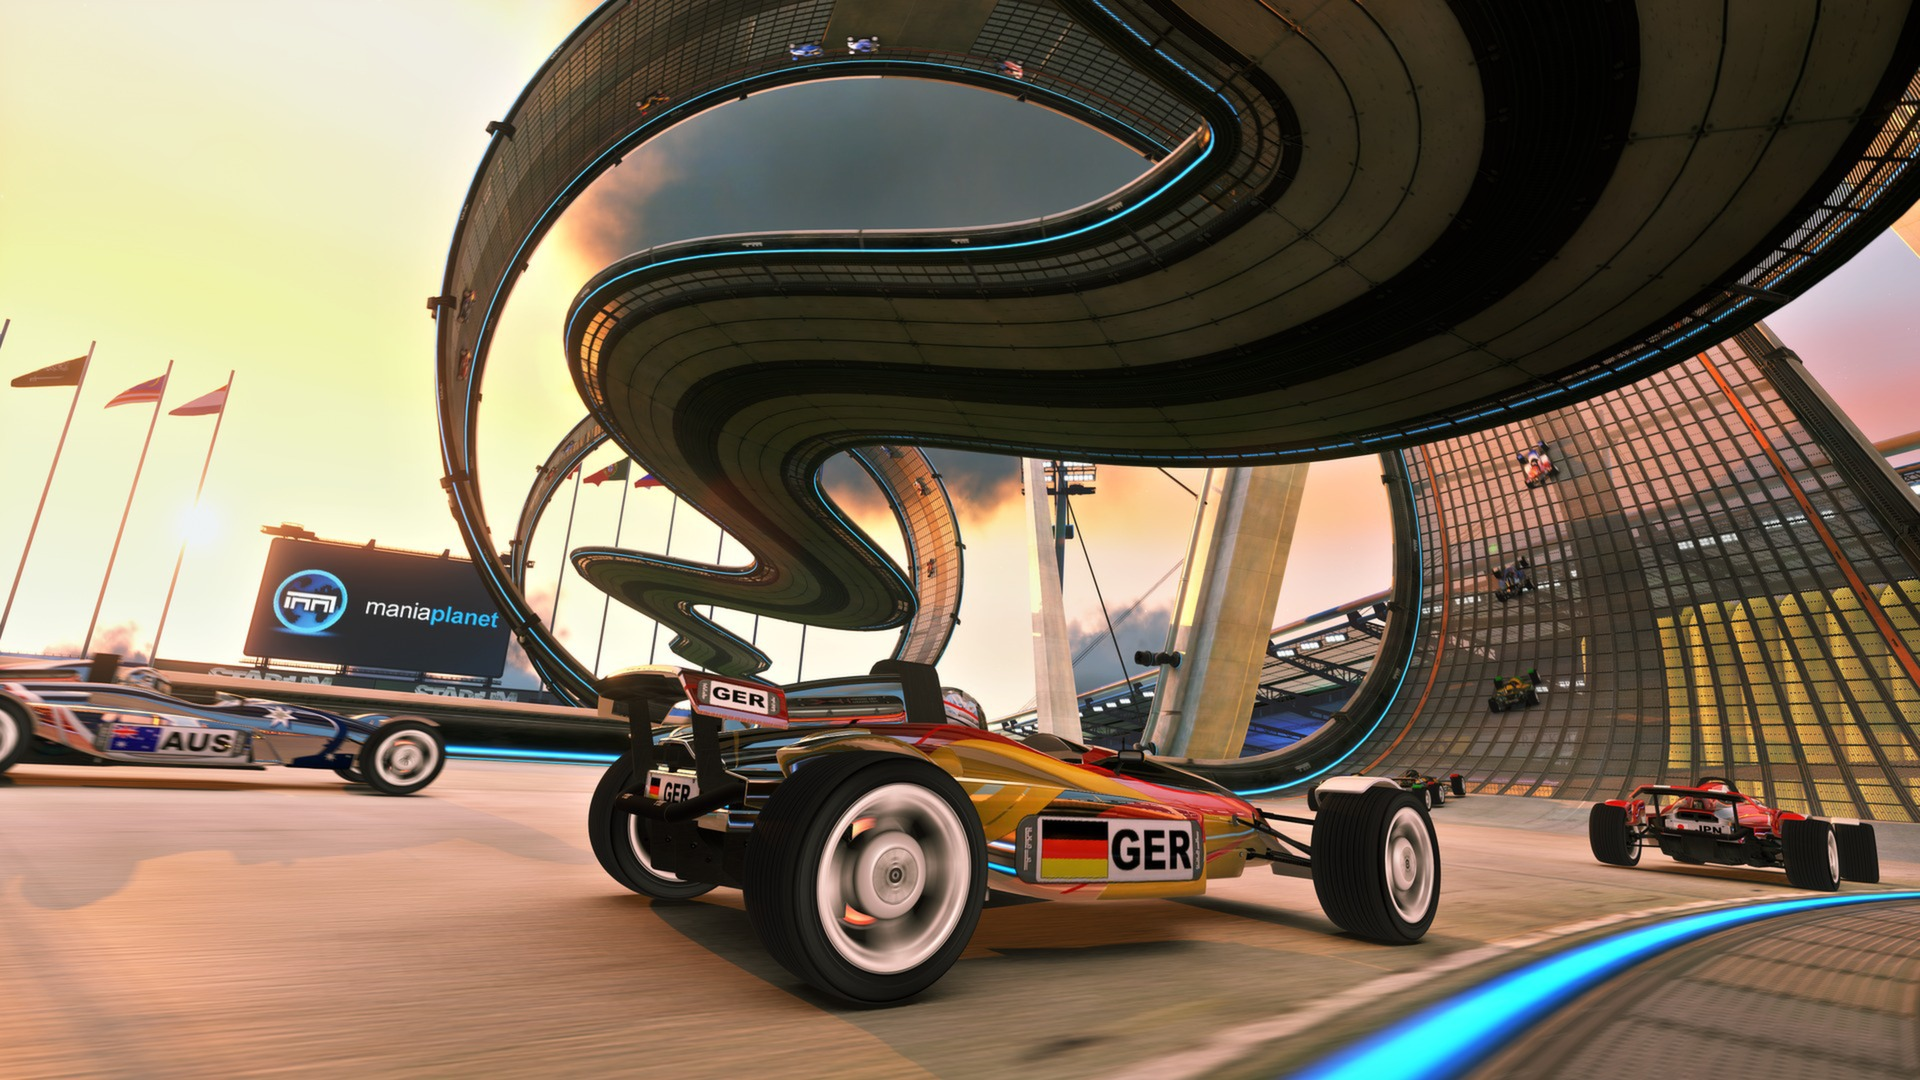 trackmania 2 free download full version for pc